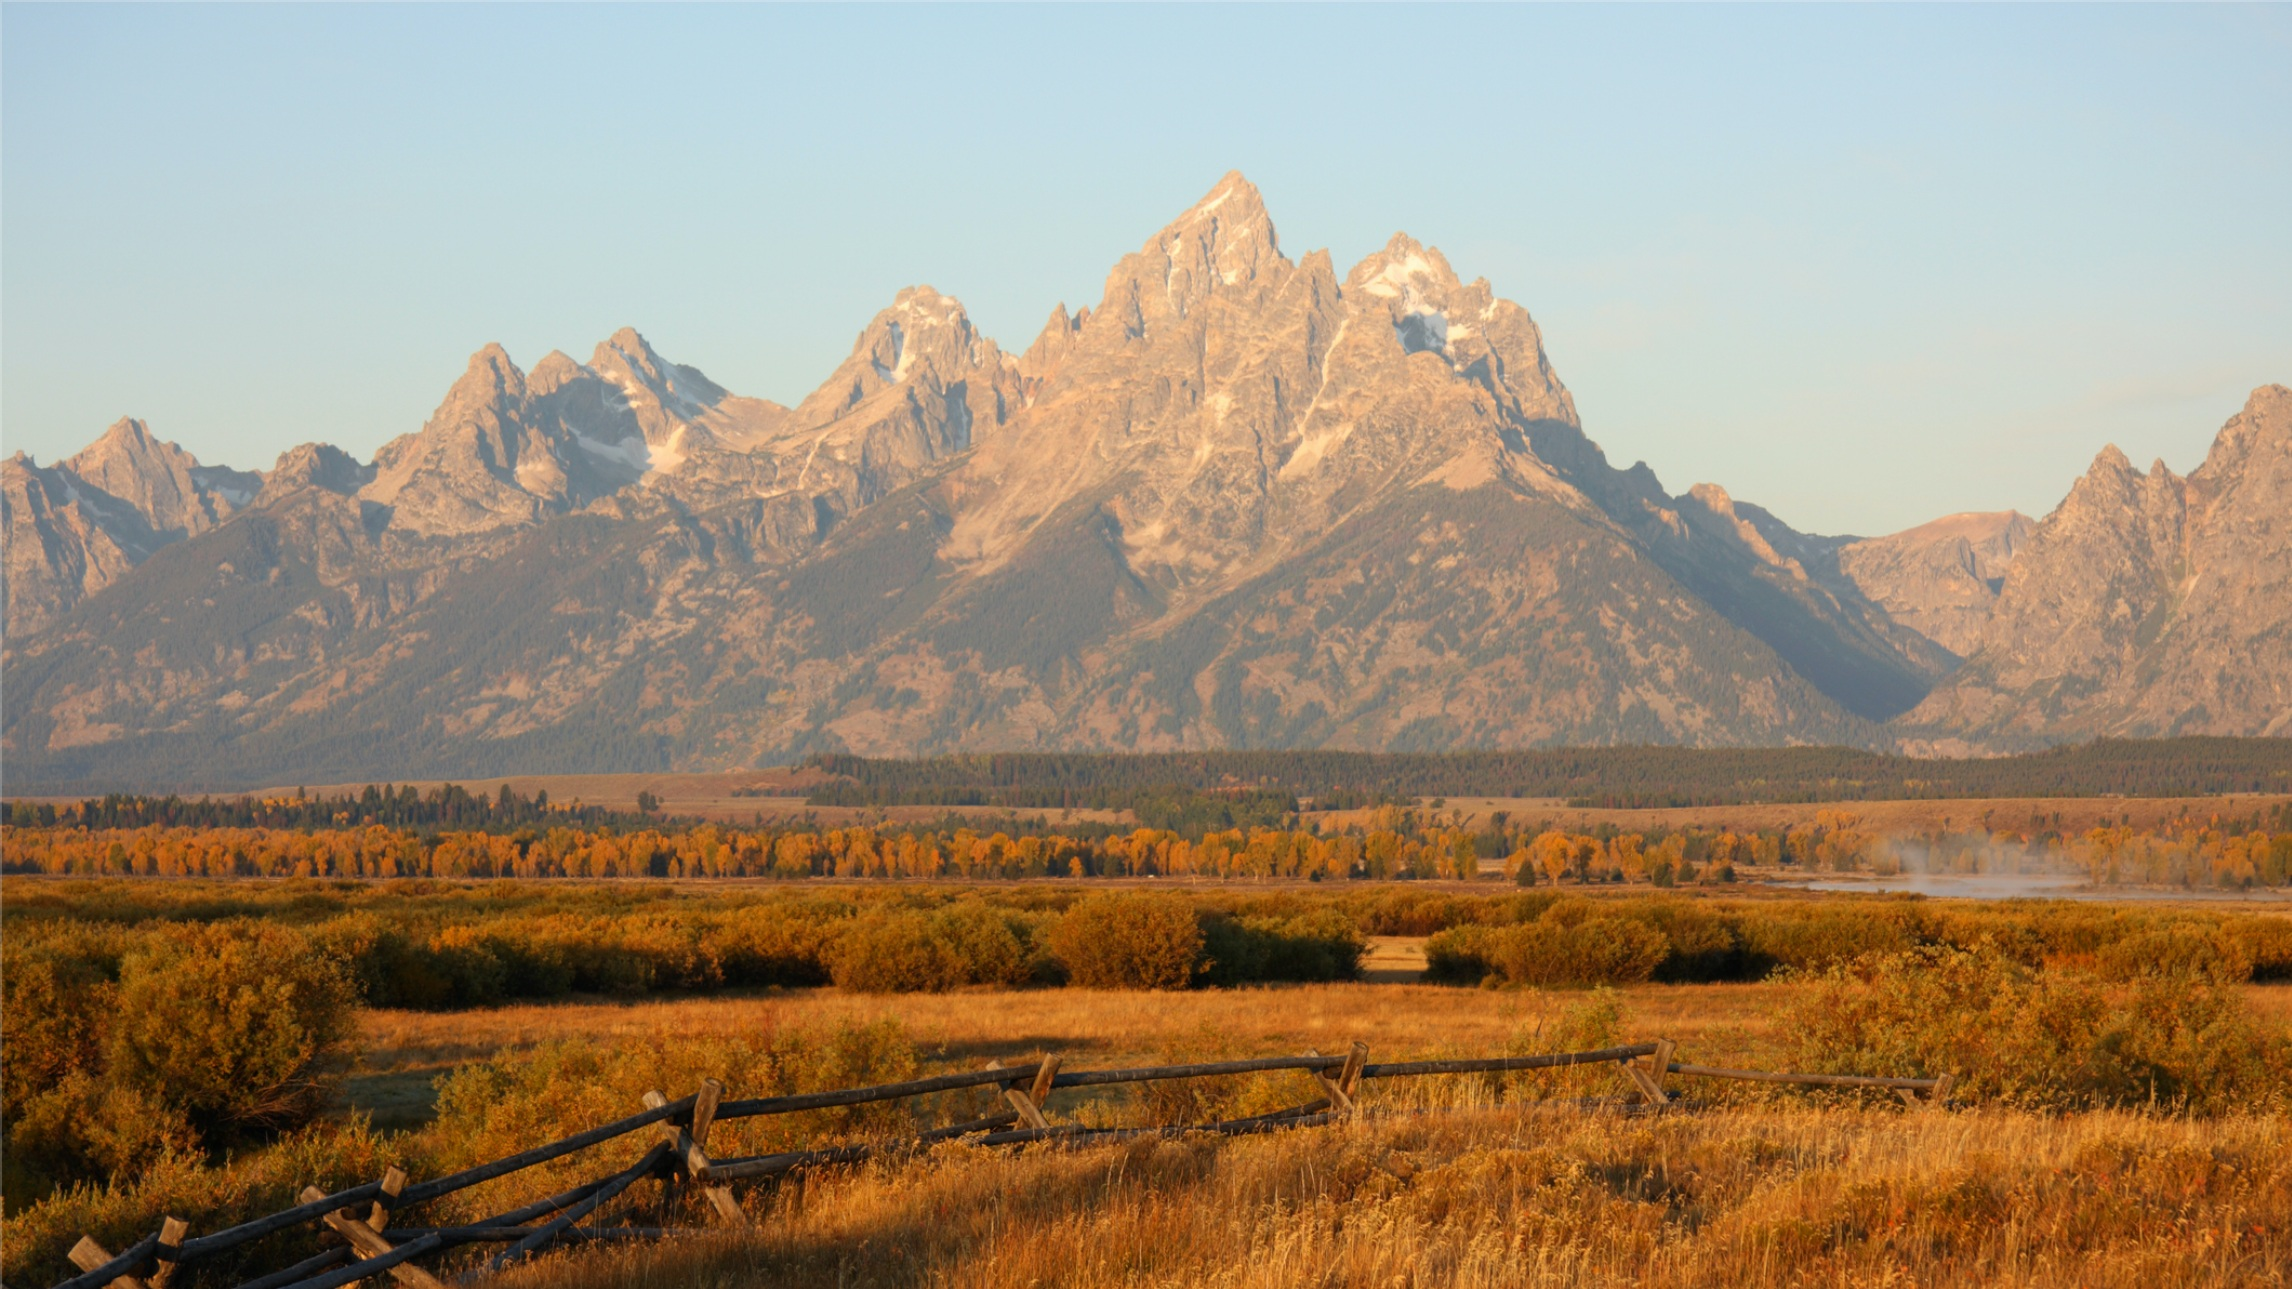 JACKSON HOLE - A UNIQUE EXPERIENCE IN THE GREAT OUTDOORSWHERE THE NATIONS HAVE COME TO OUR DOORSTEPClick here for more information